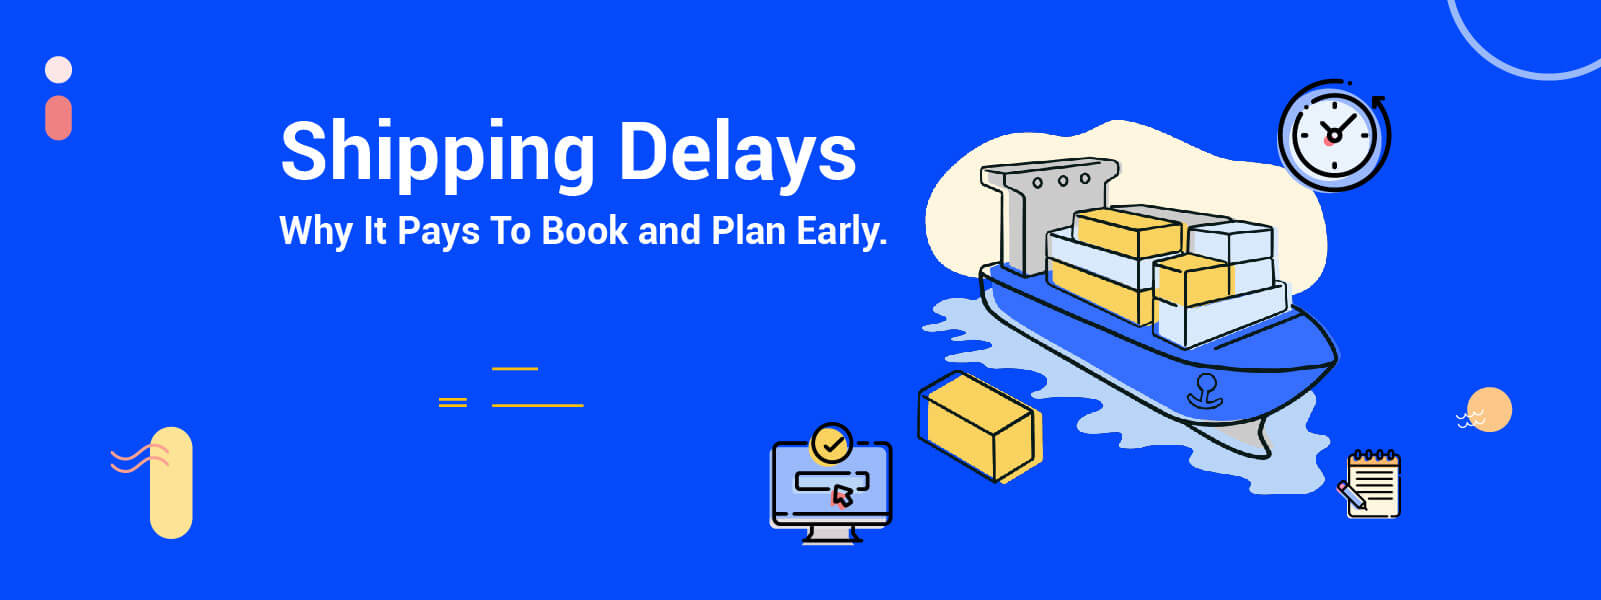 Shipping Delays, Bad for Business: Why It Pays To Book and Plan Early